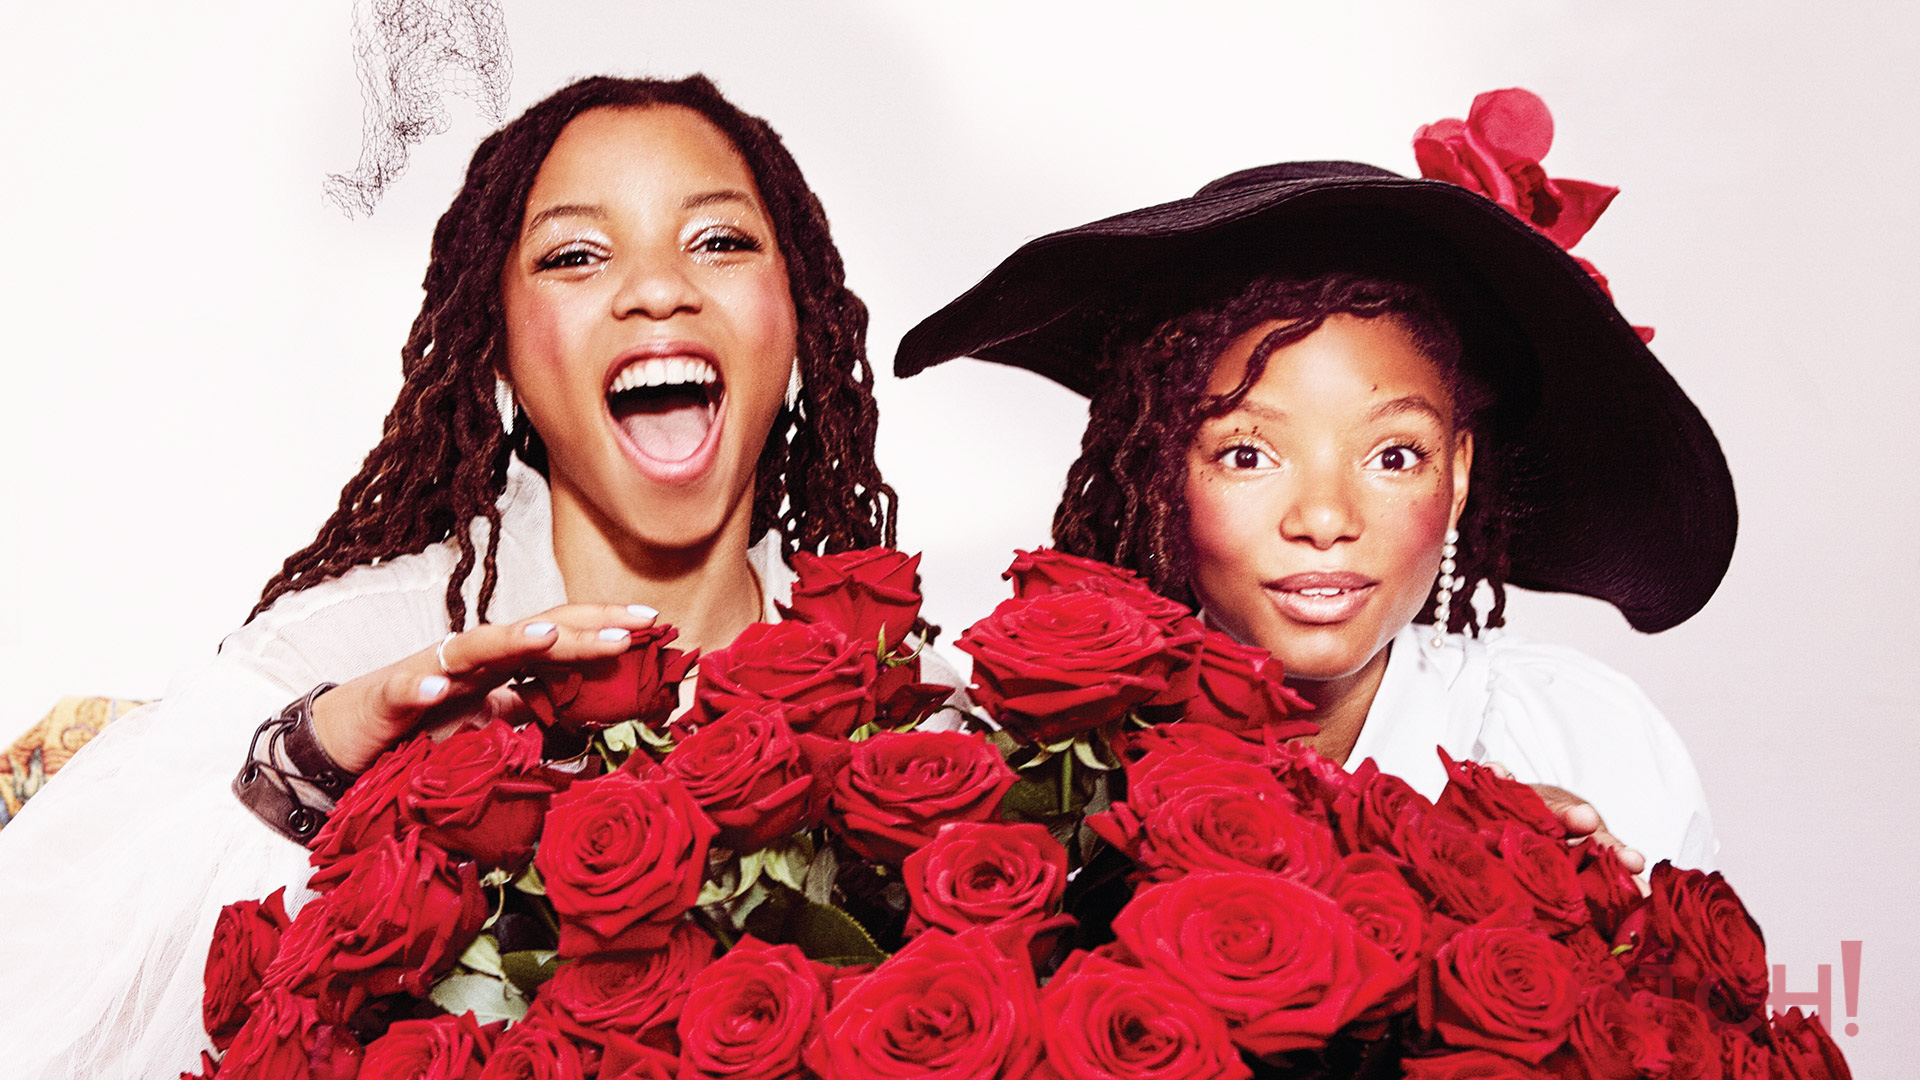 Chloe x Halle are double the trouble